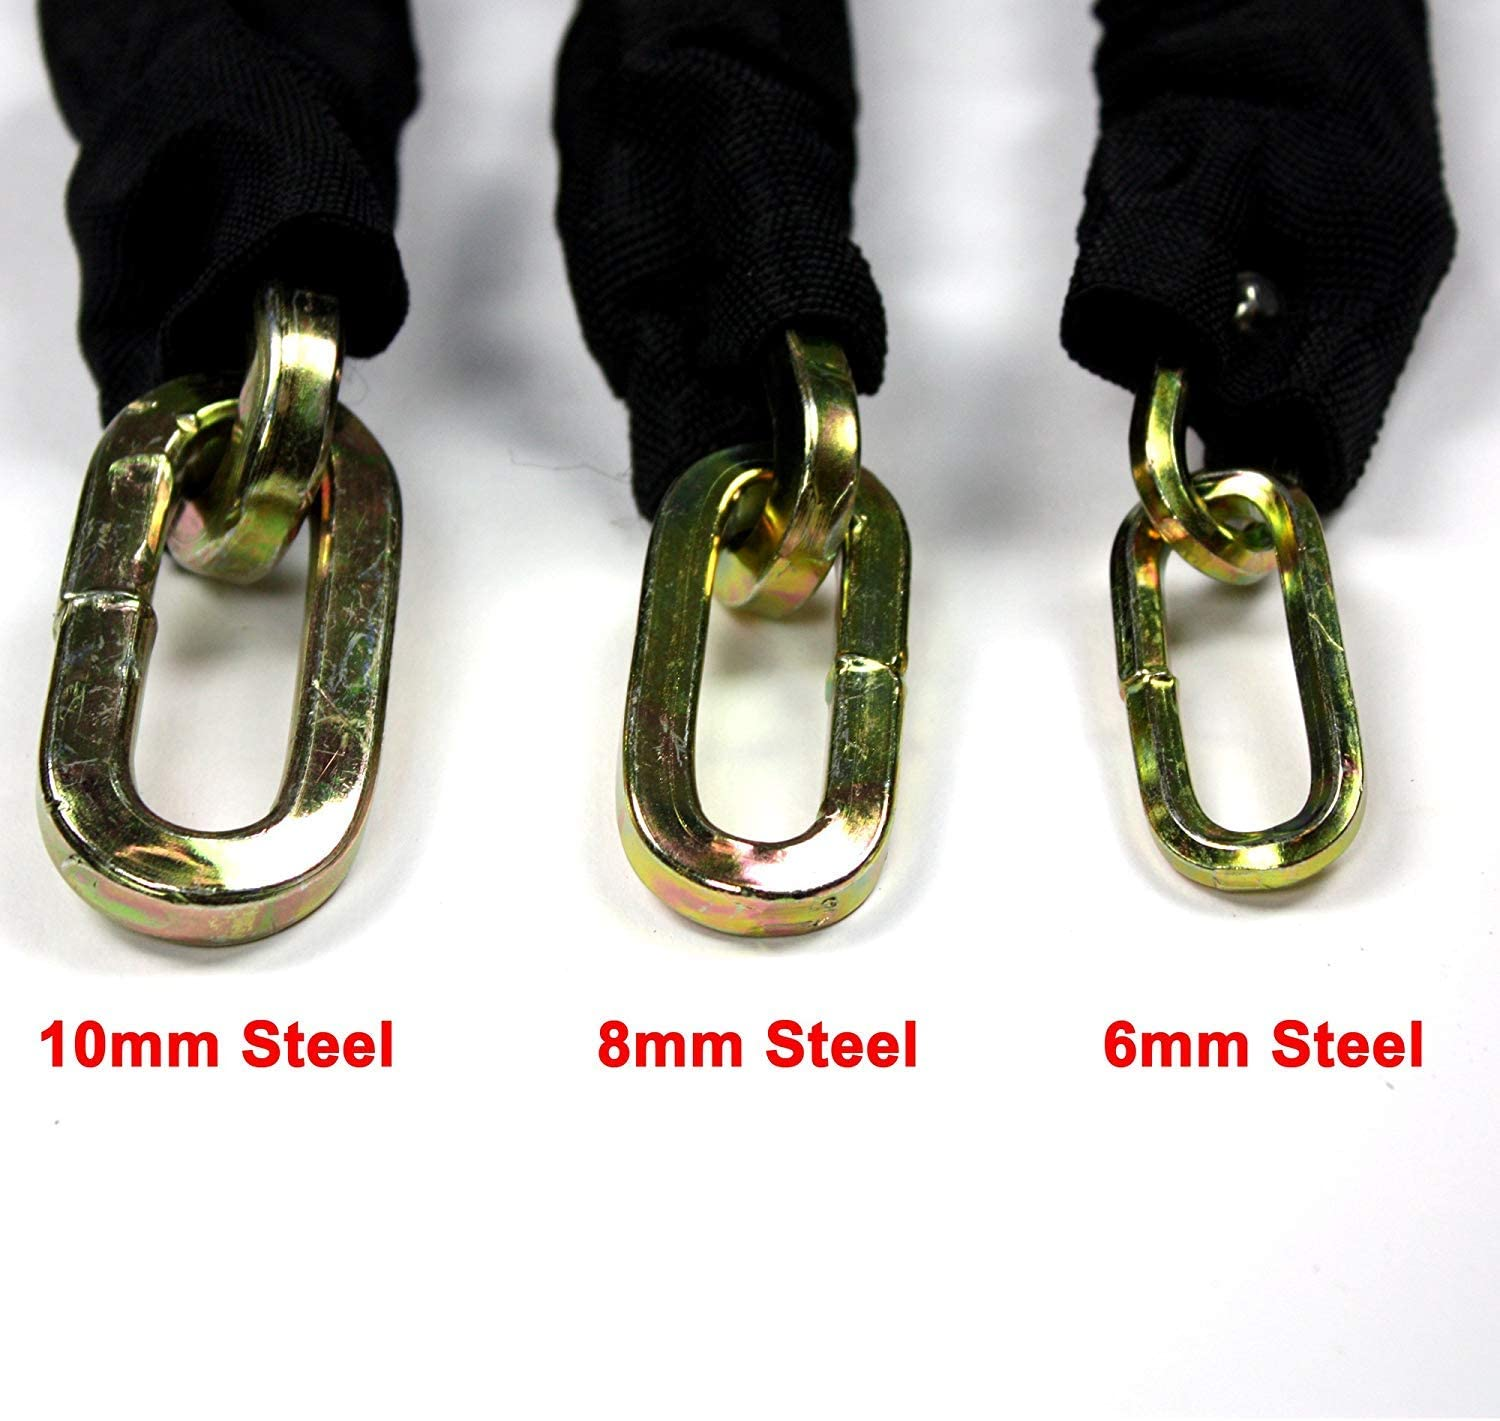 4 Models to Choose   Safety Chain Heavy Duty Anti-Theft Padlock Scooter and Motorcycles EUROXANTY/® Steel Manganese Chain Lock for Bikes